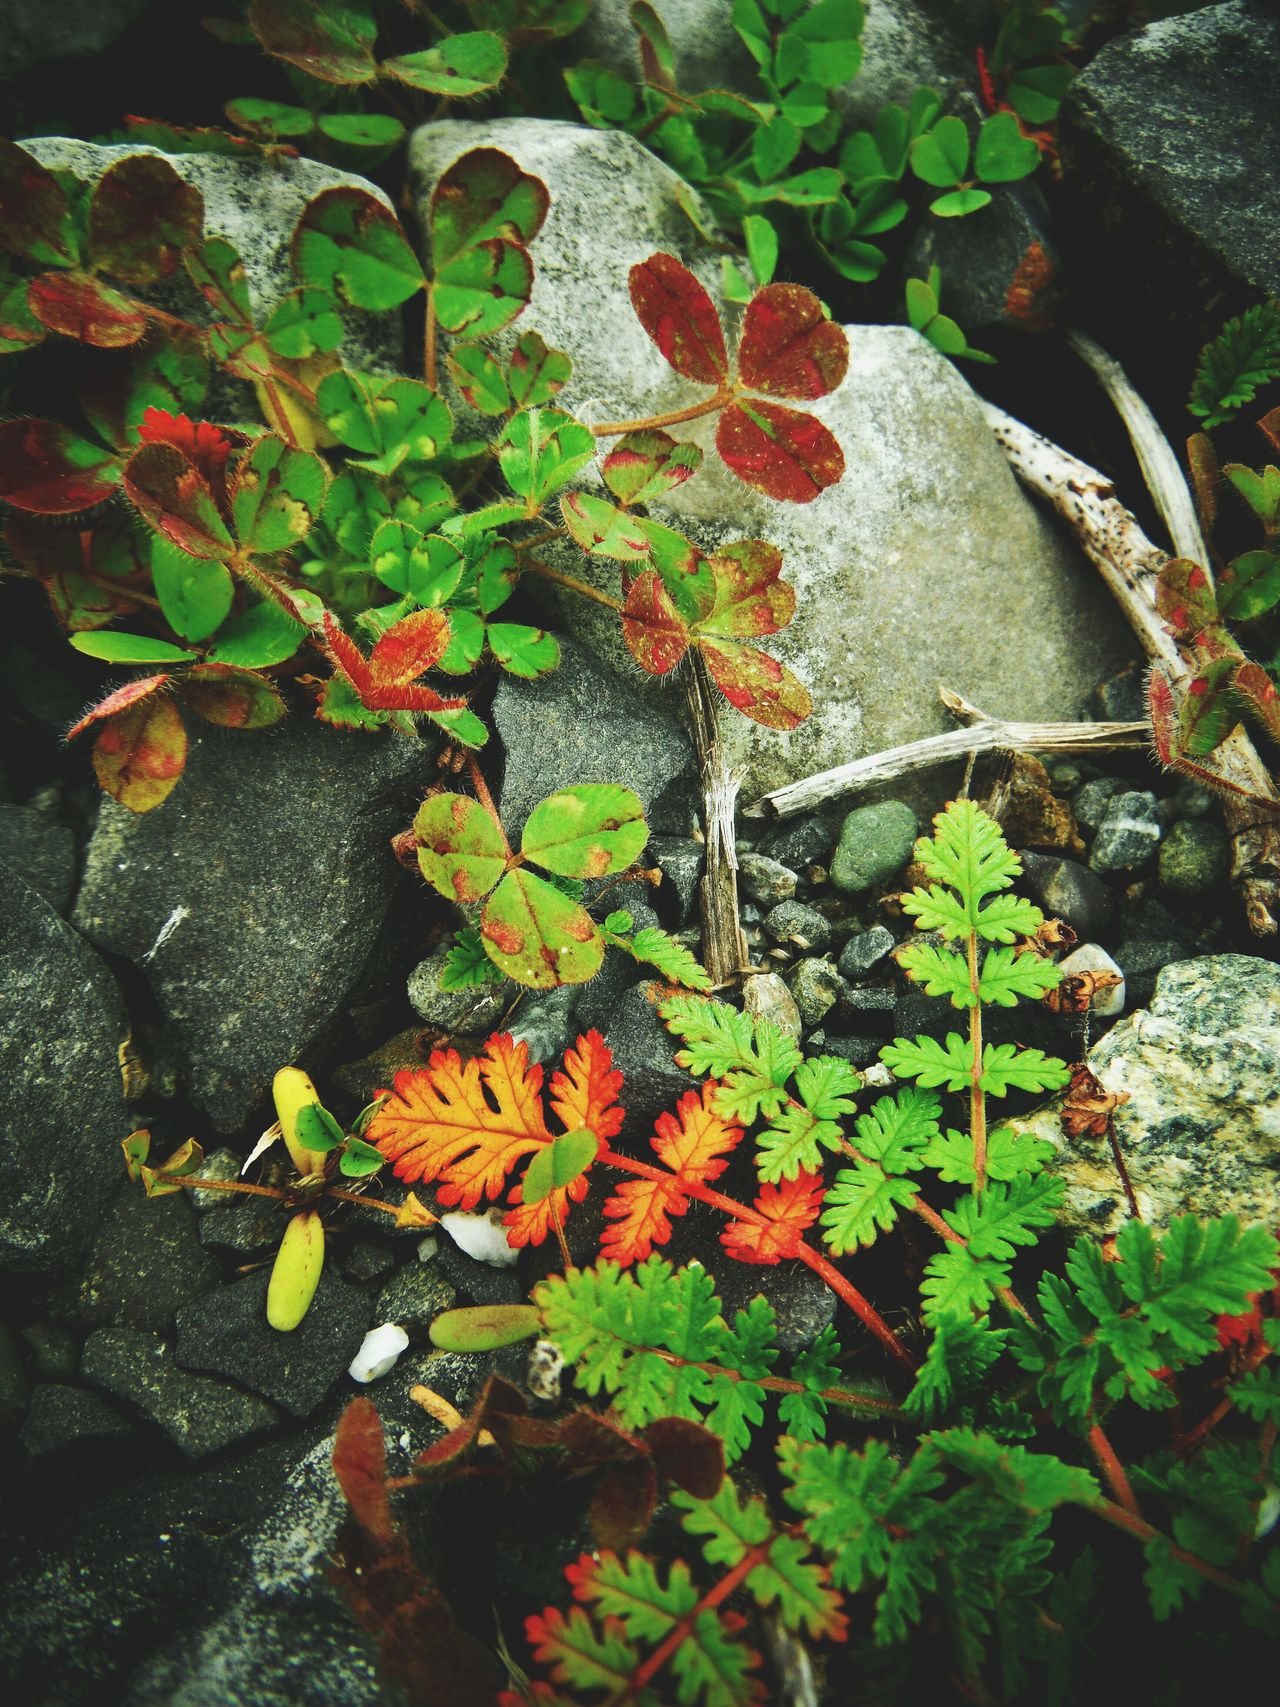 Autumn colors Leaf Growth Plant Green Color Fragility Black Butte Black Butte California Rock And Plant Arrangement Plant And Stone Fuzzy Plant Little Plants Pretty Plant Leaves Autumn Autumn Colors Autumn Leaves Fall Beauty Fall Colors Fall Leaves Orange And Green Red And Green Leaves Decorative Autumn Decor Fall Decor